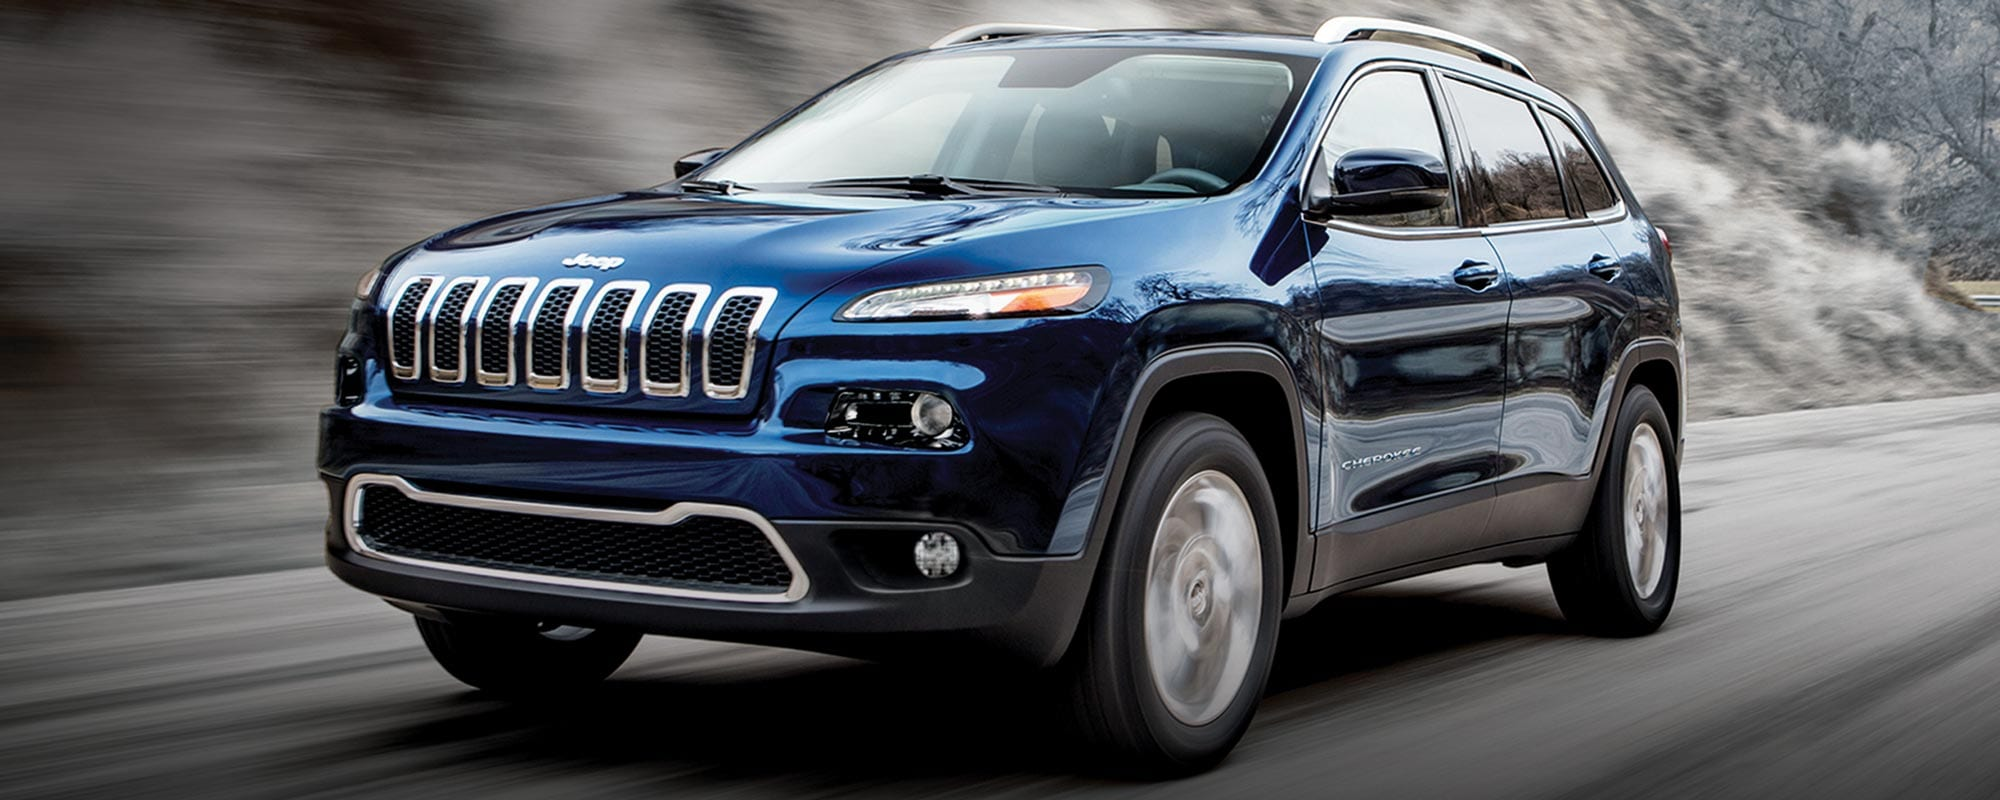 Jeep Cherokee-Based Chrysler Model Possibly in the Works? thumb